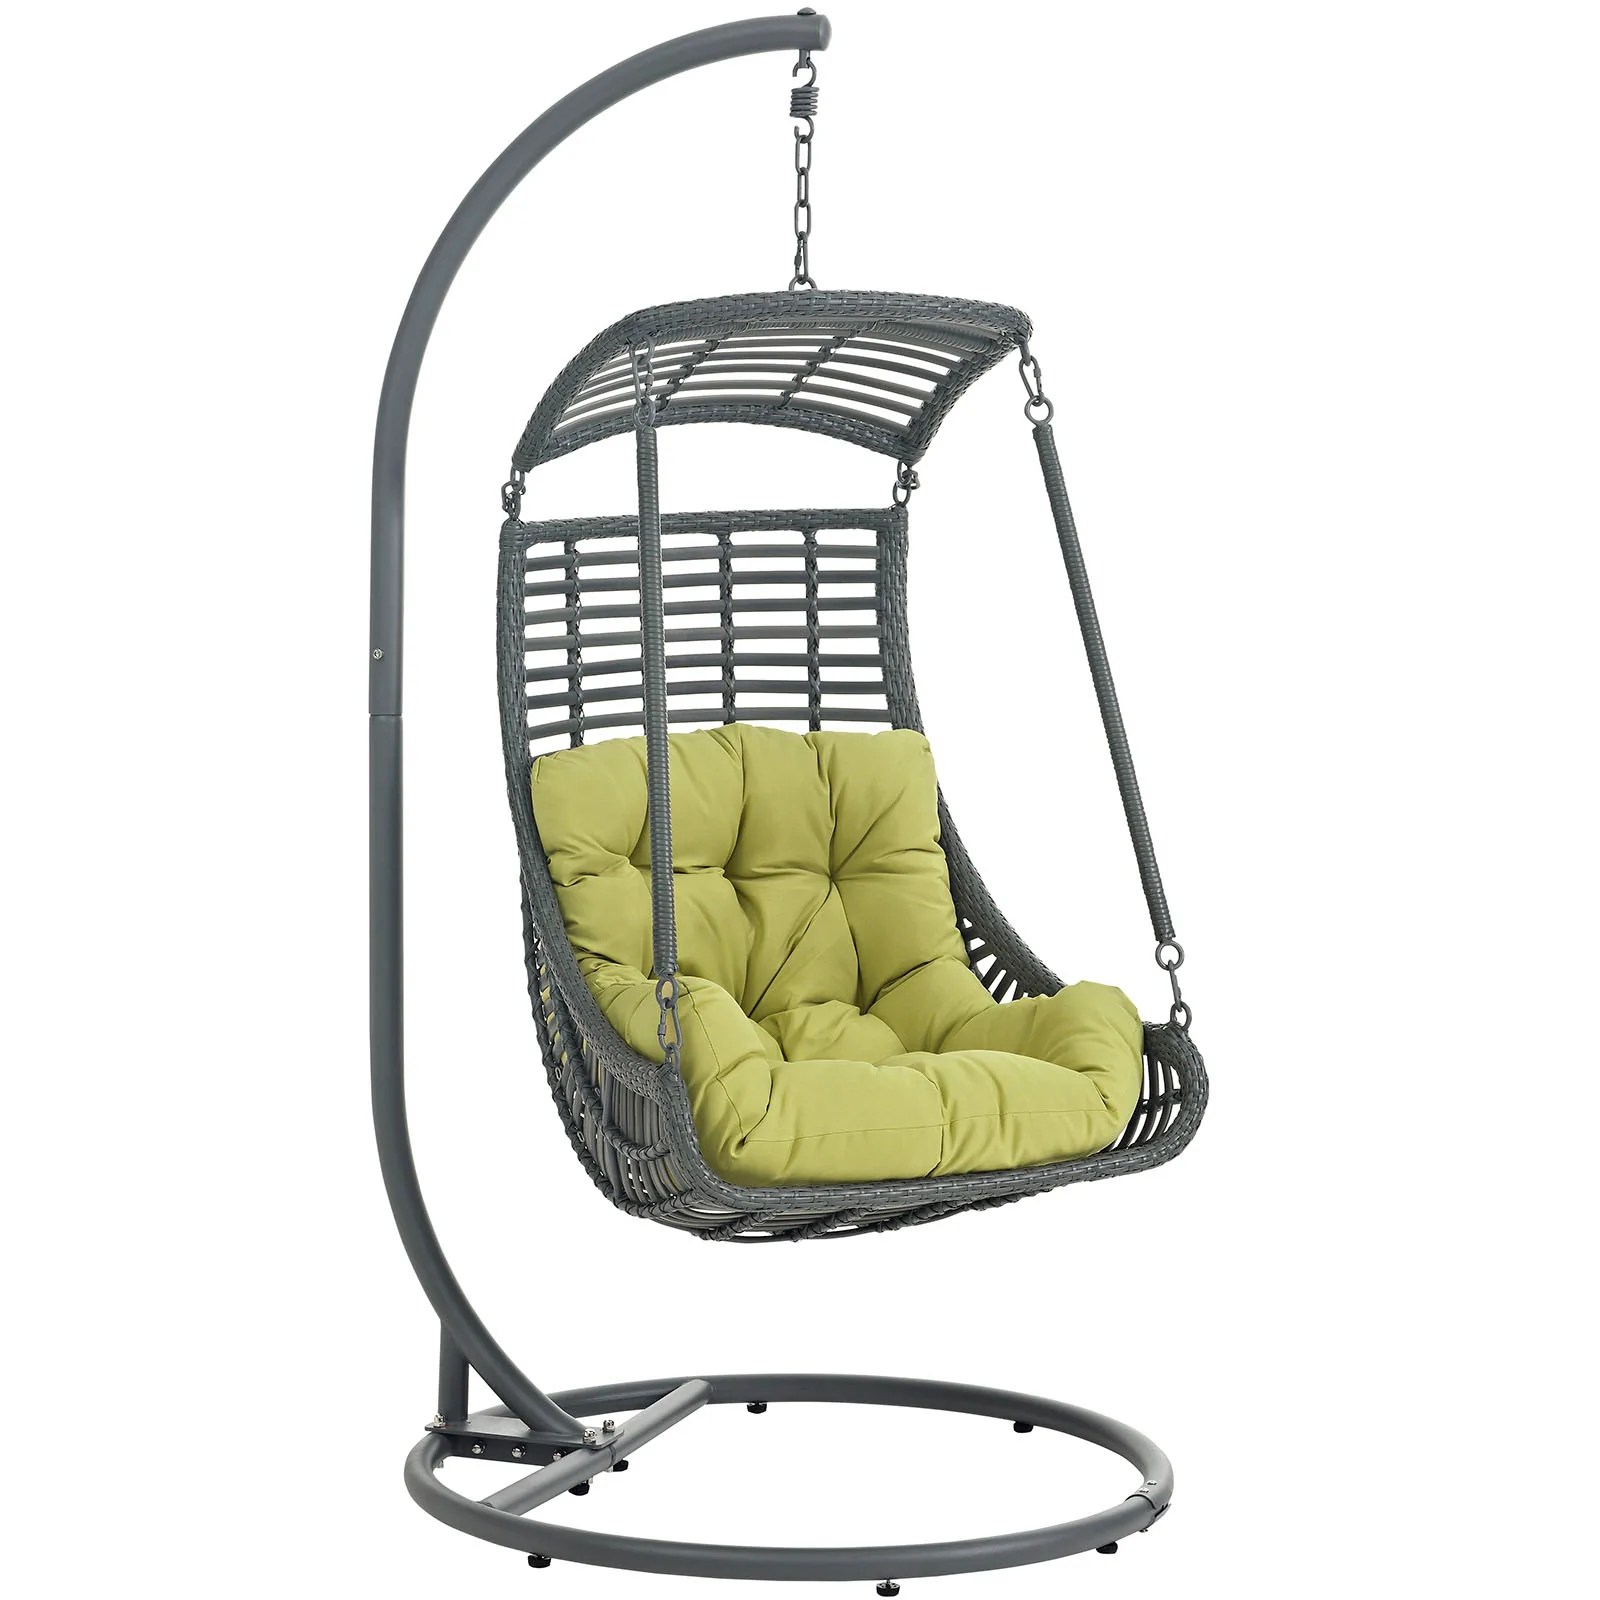 Swing Chair Stand Modway Jungle Outdoor Patio Swing Chair With Stand Eei 2274